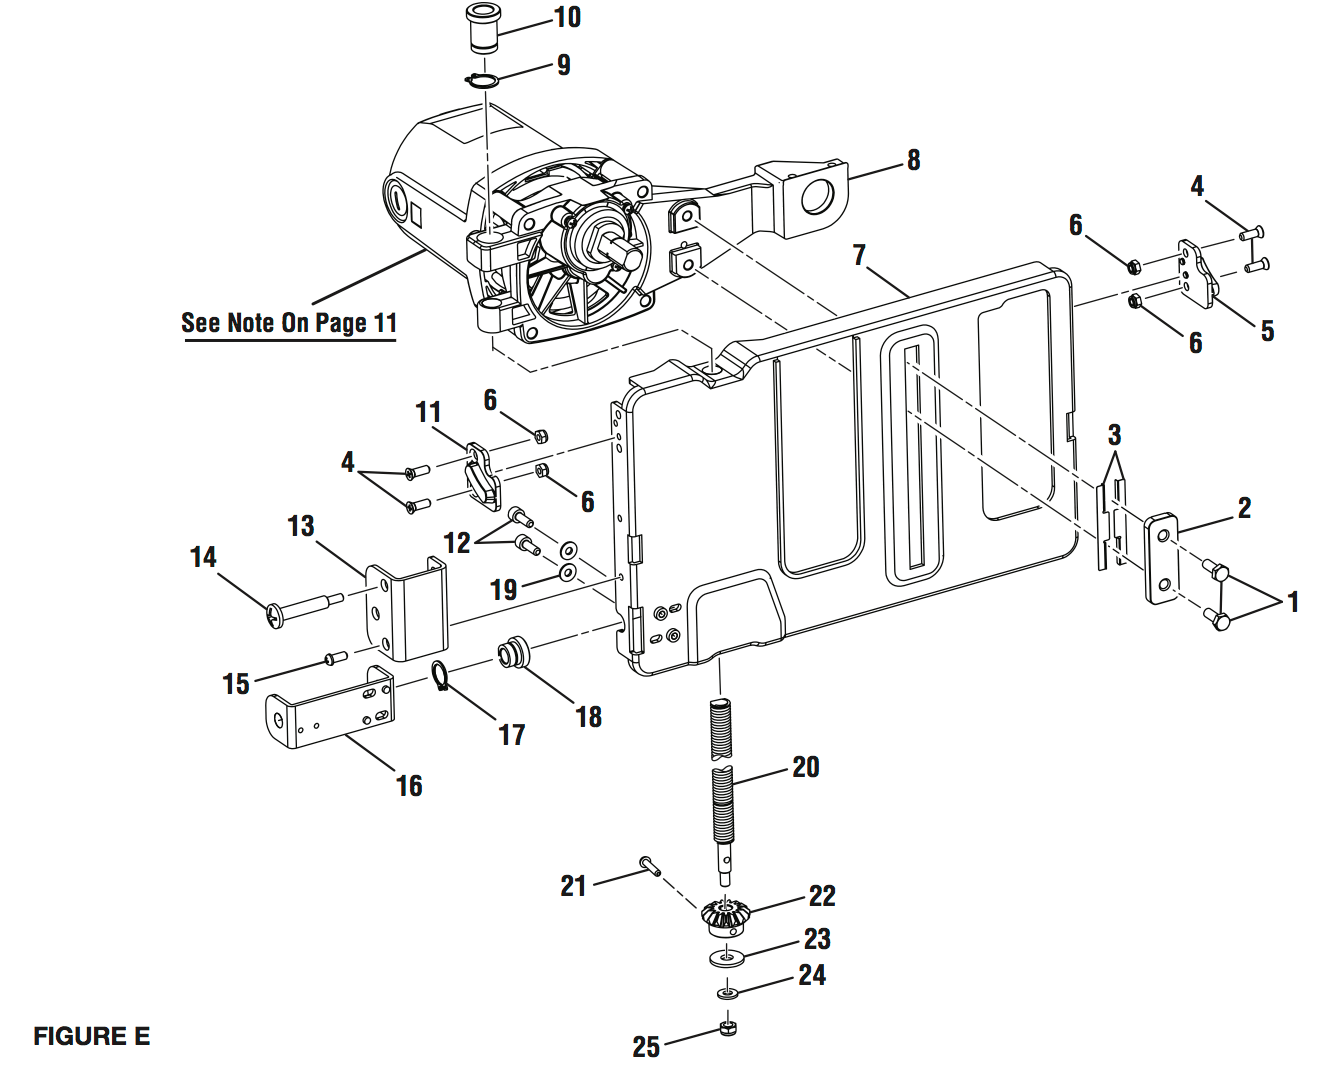 Wiring Diagram For Table Saw